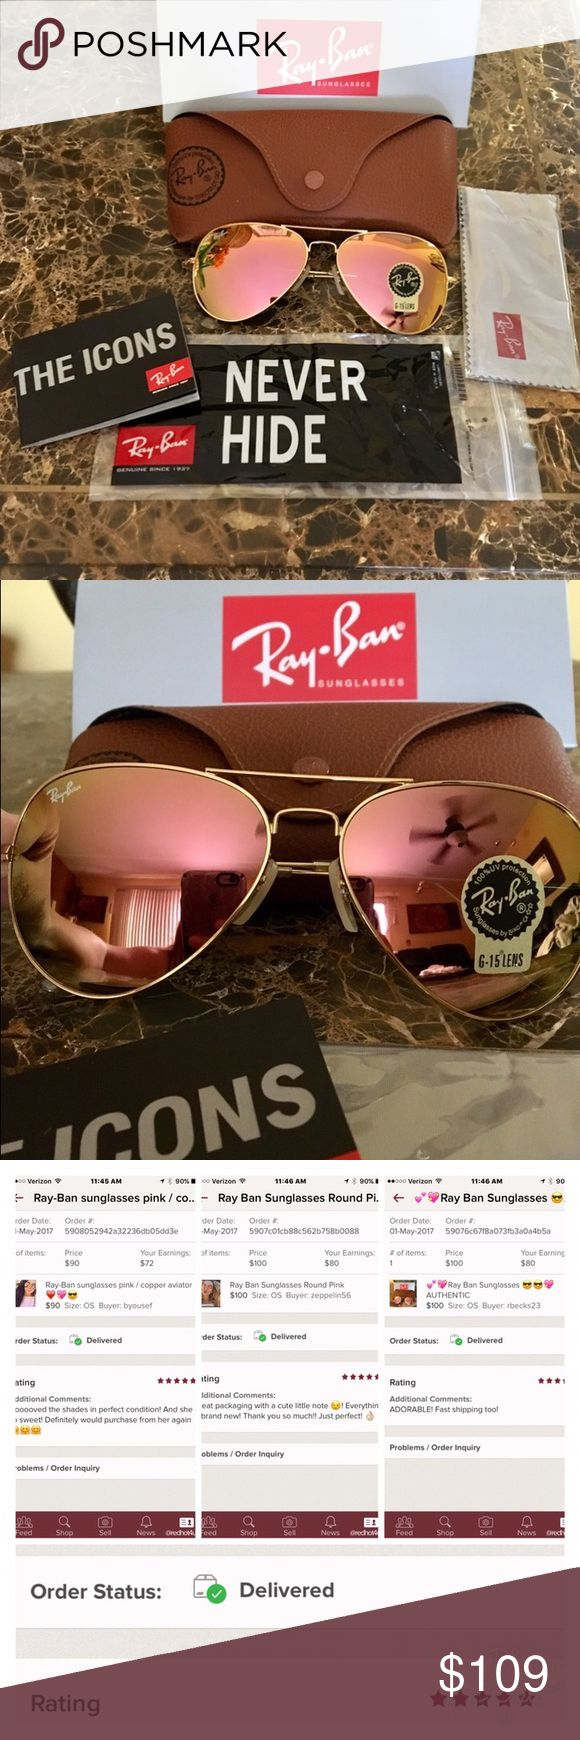 ‼️ PRICE DROP ‼️Ray Ban Sunglasses Pink Aviator PRICE IS FIRM !!         Ray Ban Sunglasses 100% Authentic. Model : RB3025 , Size 58mm , Color : Pink / Copper lens with Gold Frame. All Brand New !!   Comes with Ray Ban Sunglasses, Ray Ban Box , Ray Ban case , Ray Ban cleaning cloth ( everything you see in photos ) Made in Italy.  Buy with confidence from a trusted source right here at my closet.  Case color may vary from ( brown seen in photos ) to black. If you have a preference please…